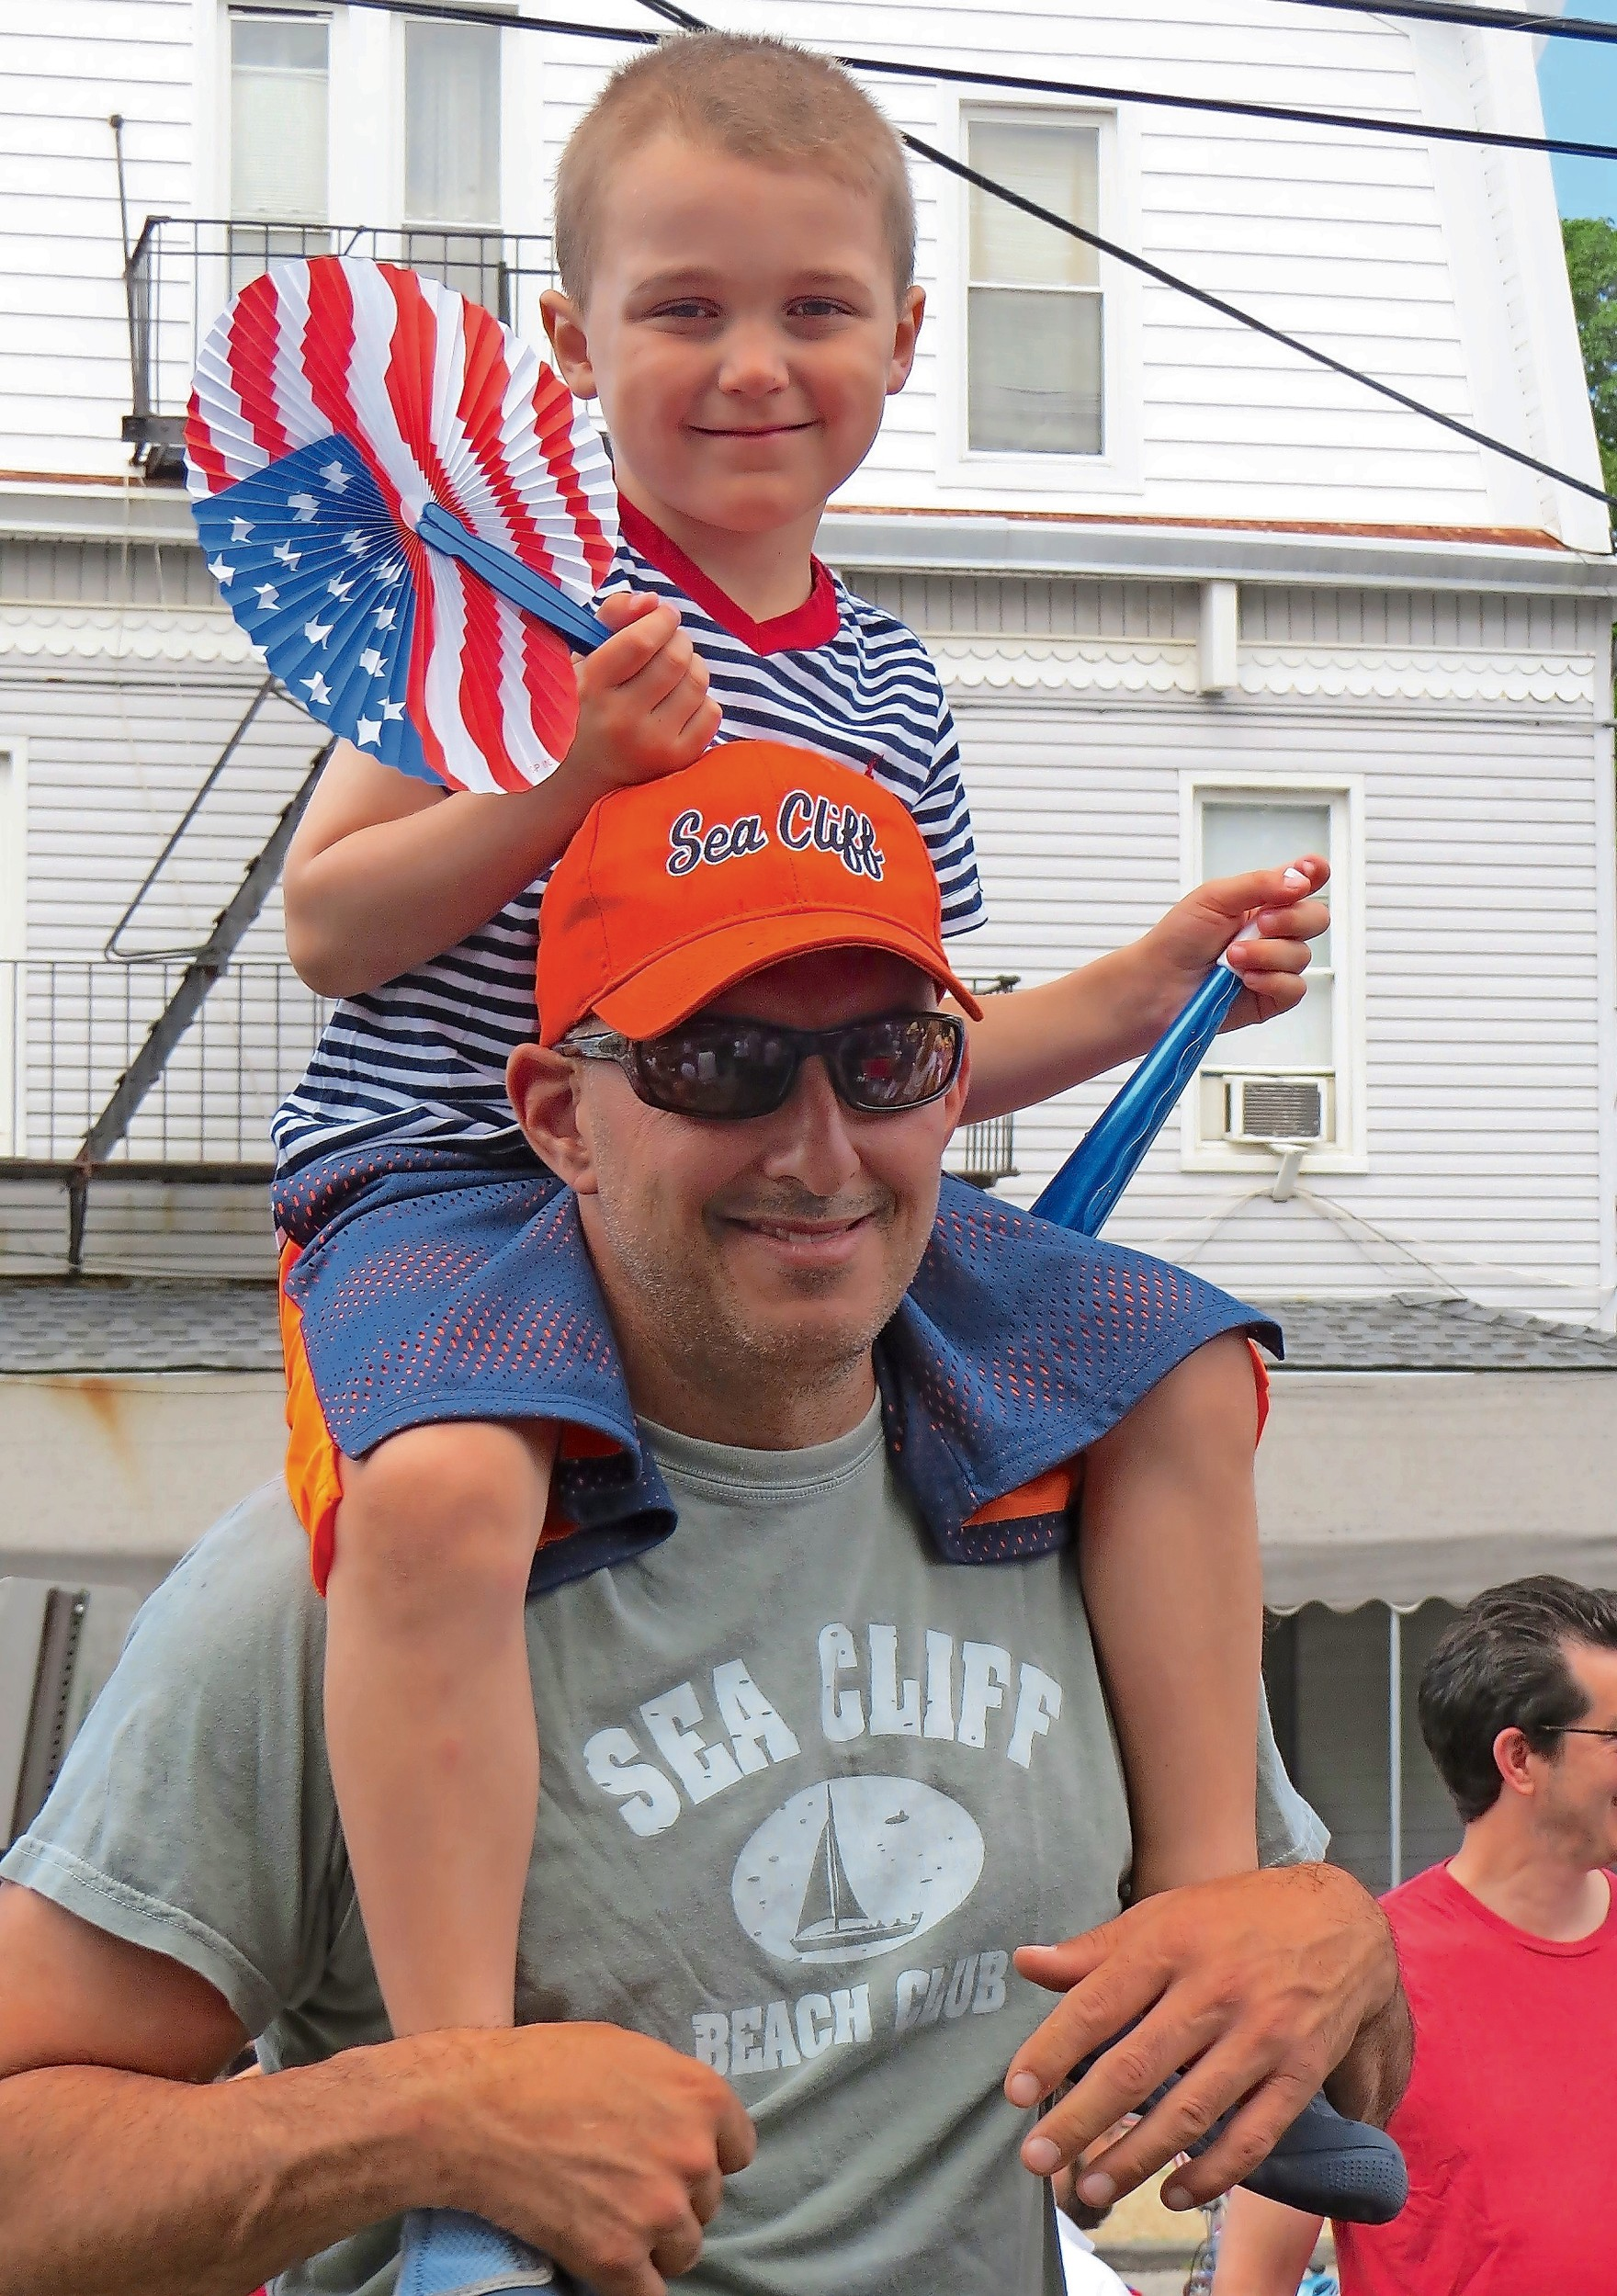 Dylan Capuano, 5, sat on his dad George's shoulders, to get a great view of all the festivities during the parade.